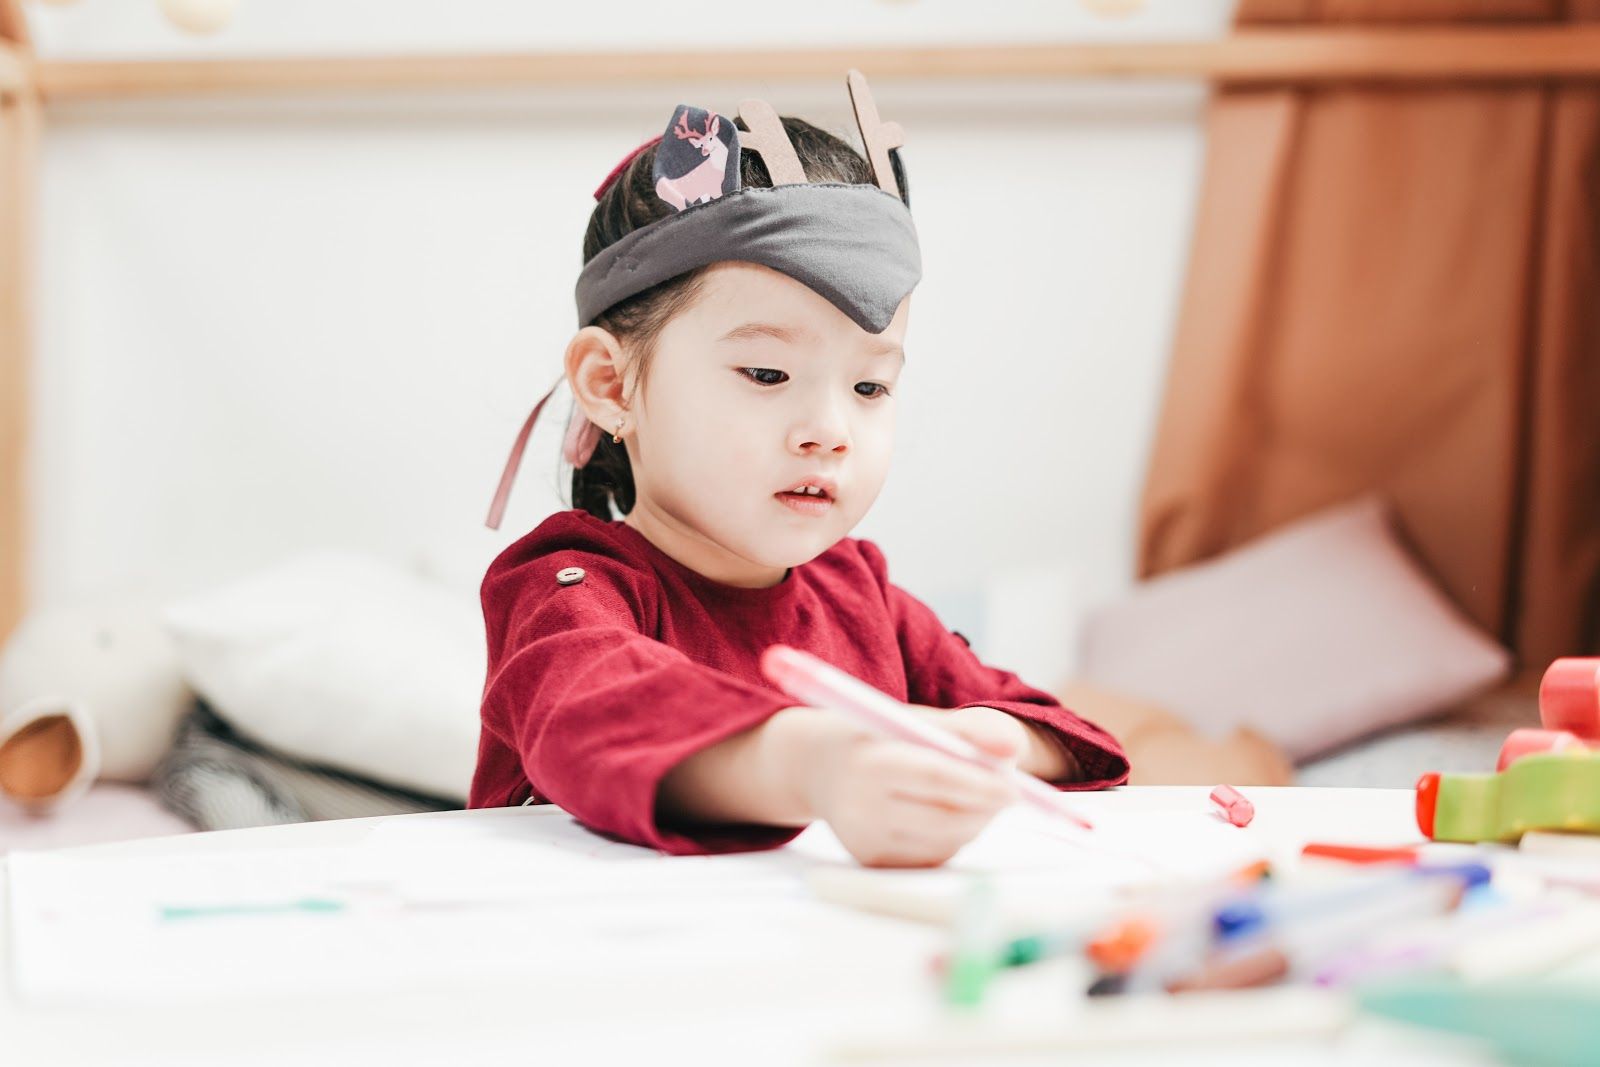 A preschool-aged student is seated at a table with markers, working on a project.